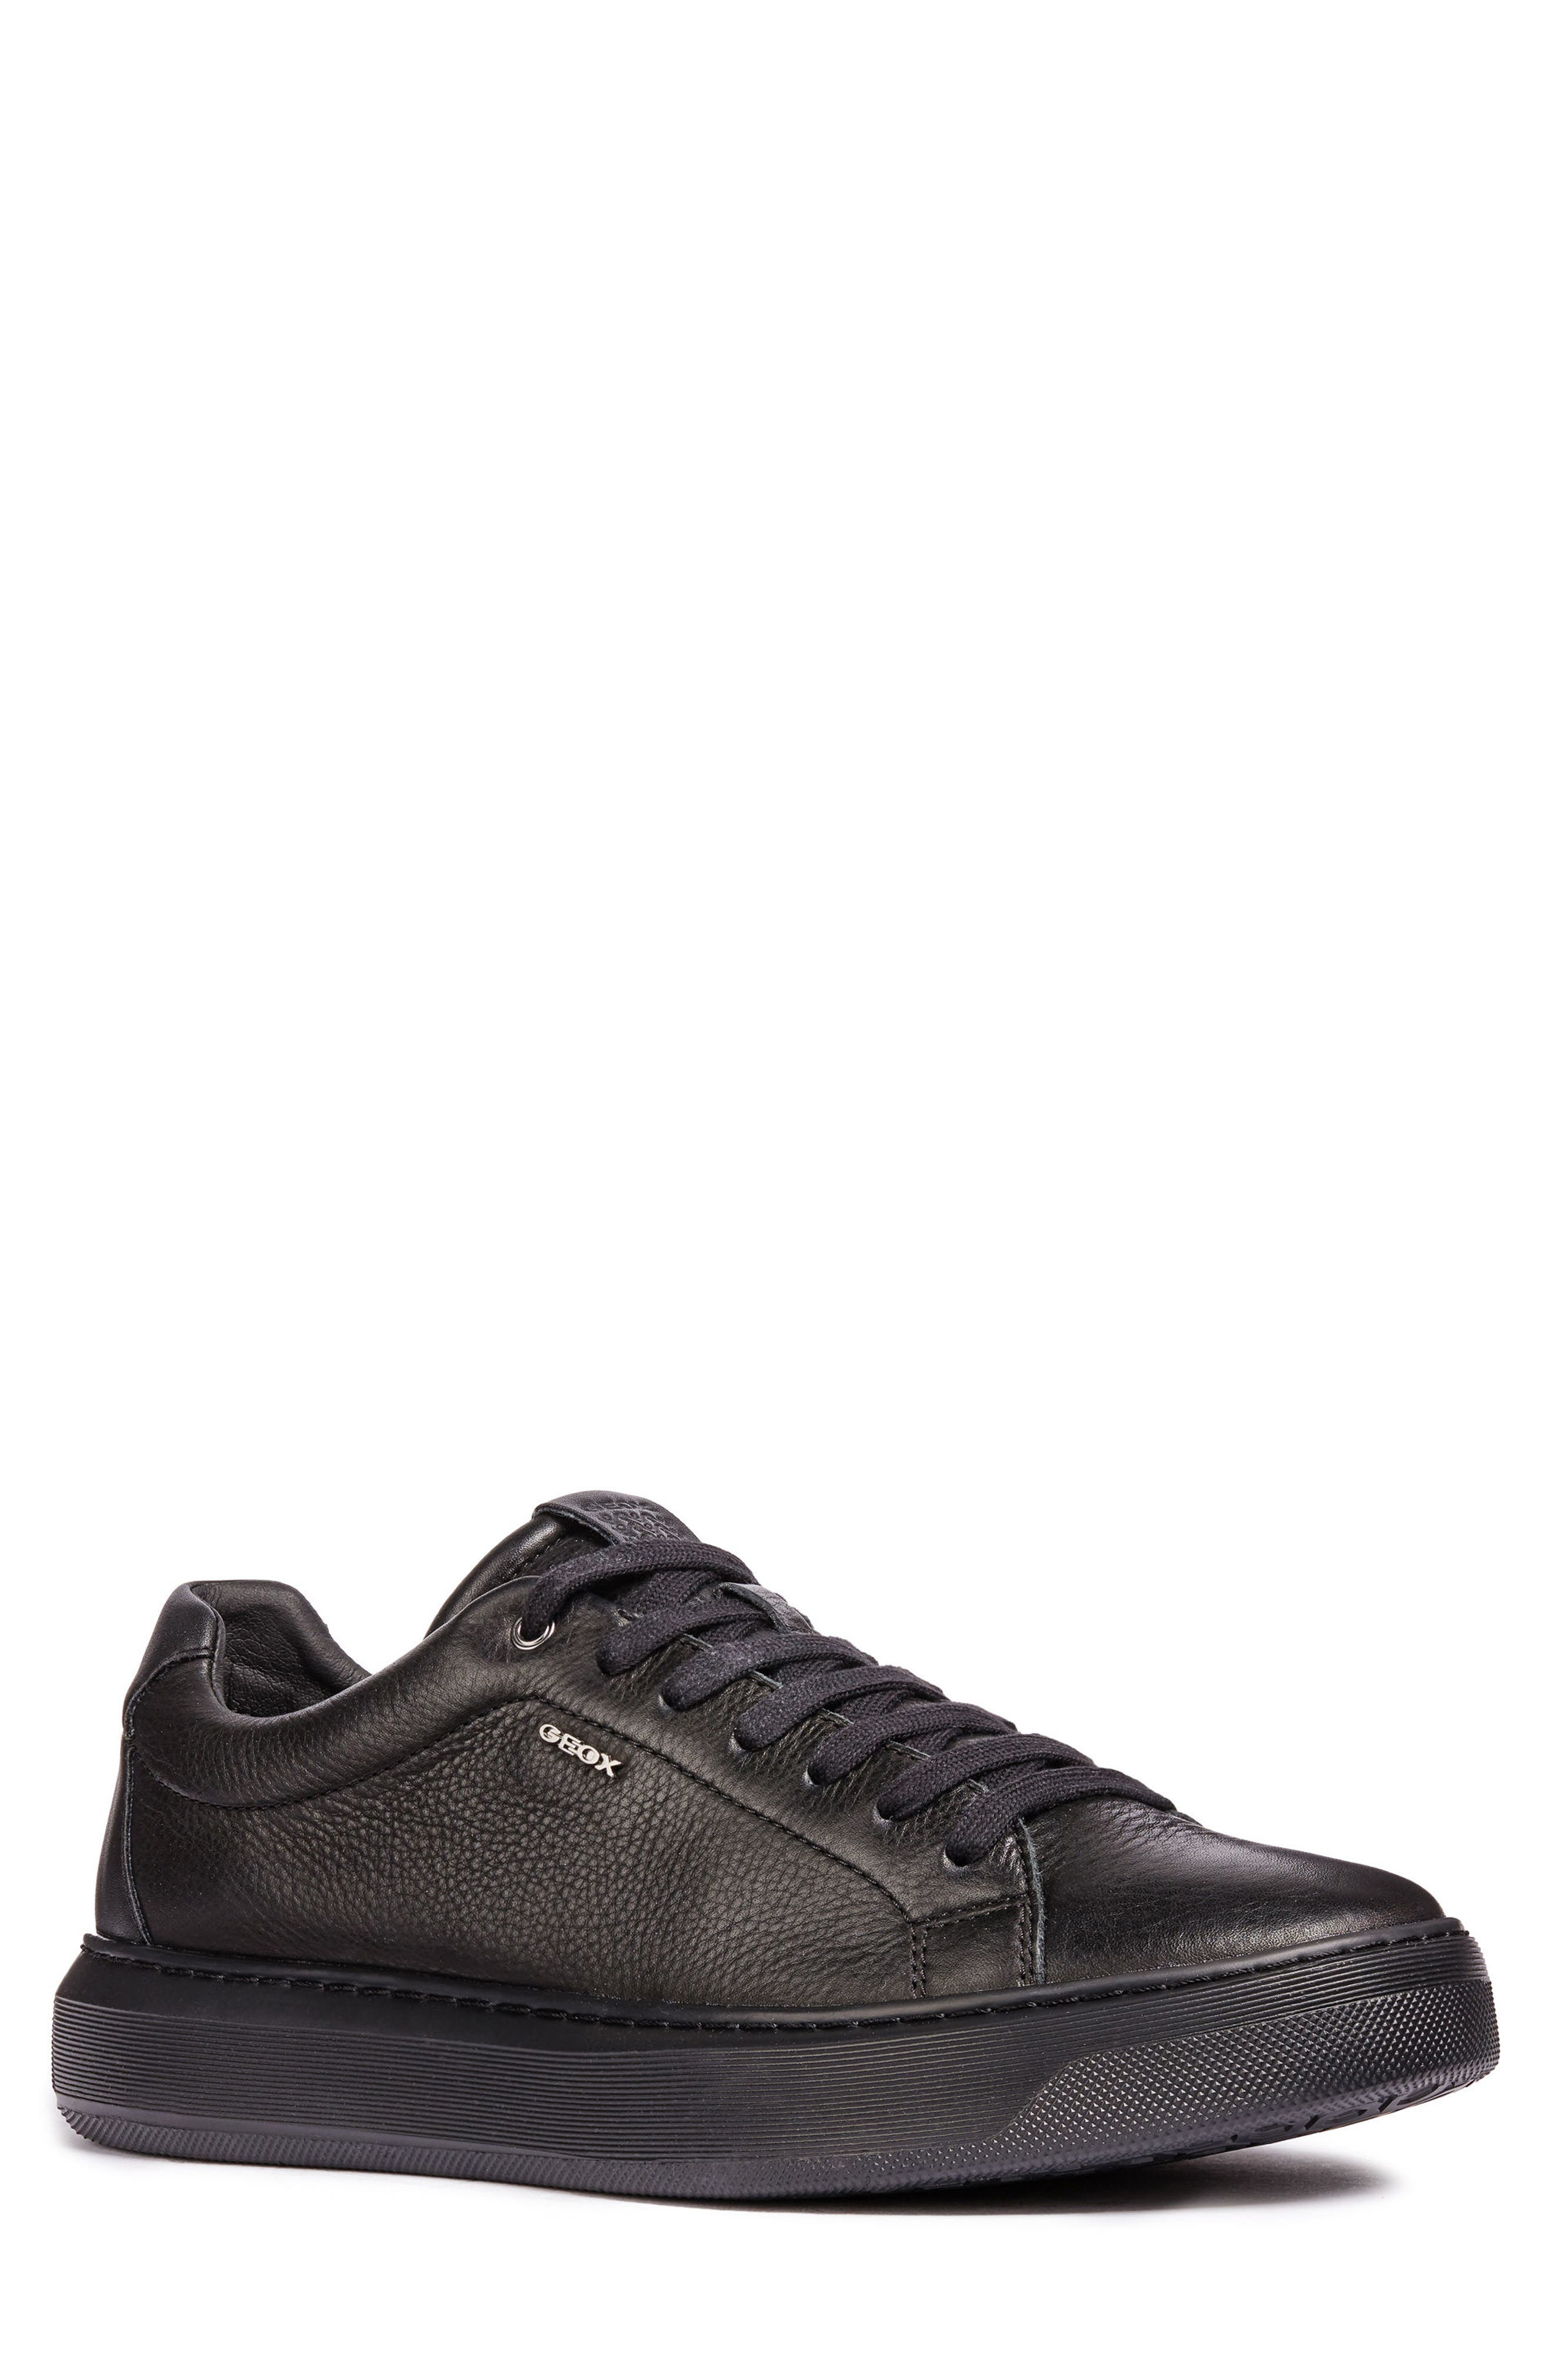 Deiven 4 Low Top Sneaker,                         Main,                         color, BLACK LEATHER